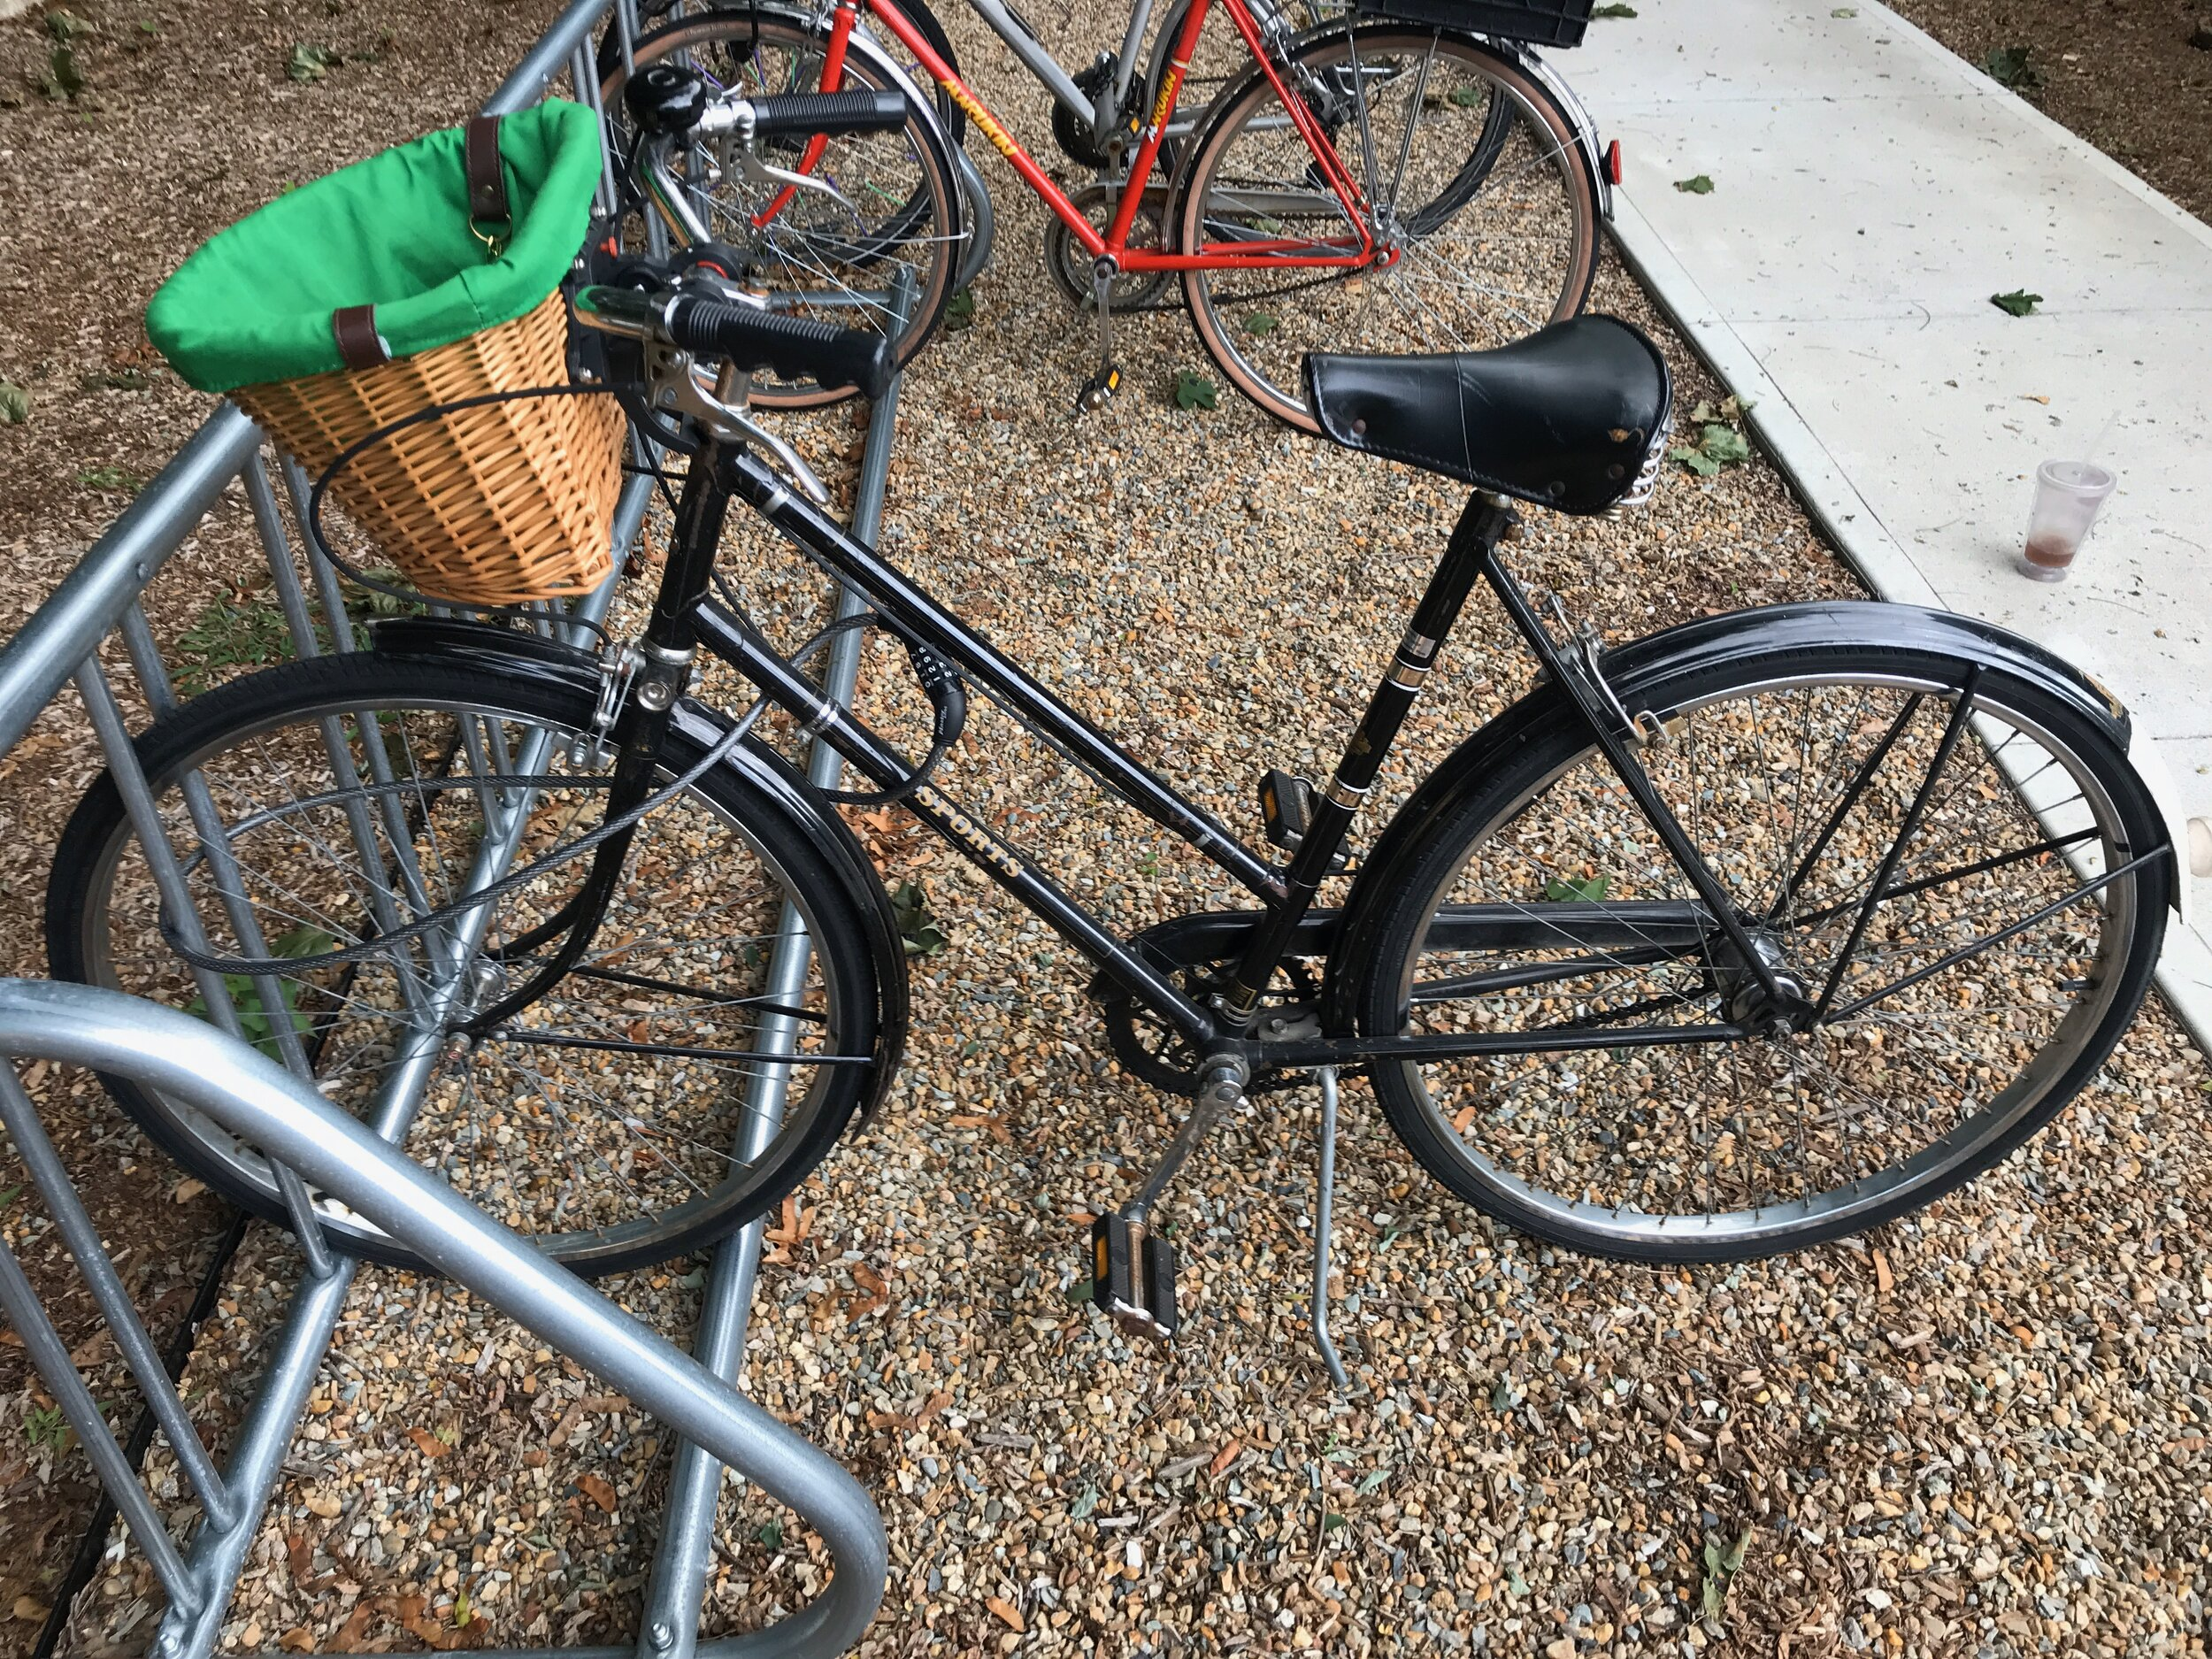 My vintage Raleigh Sports 3-speed is great for exploring town in style!